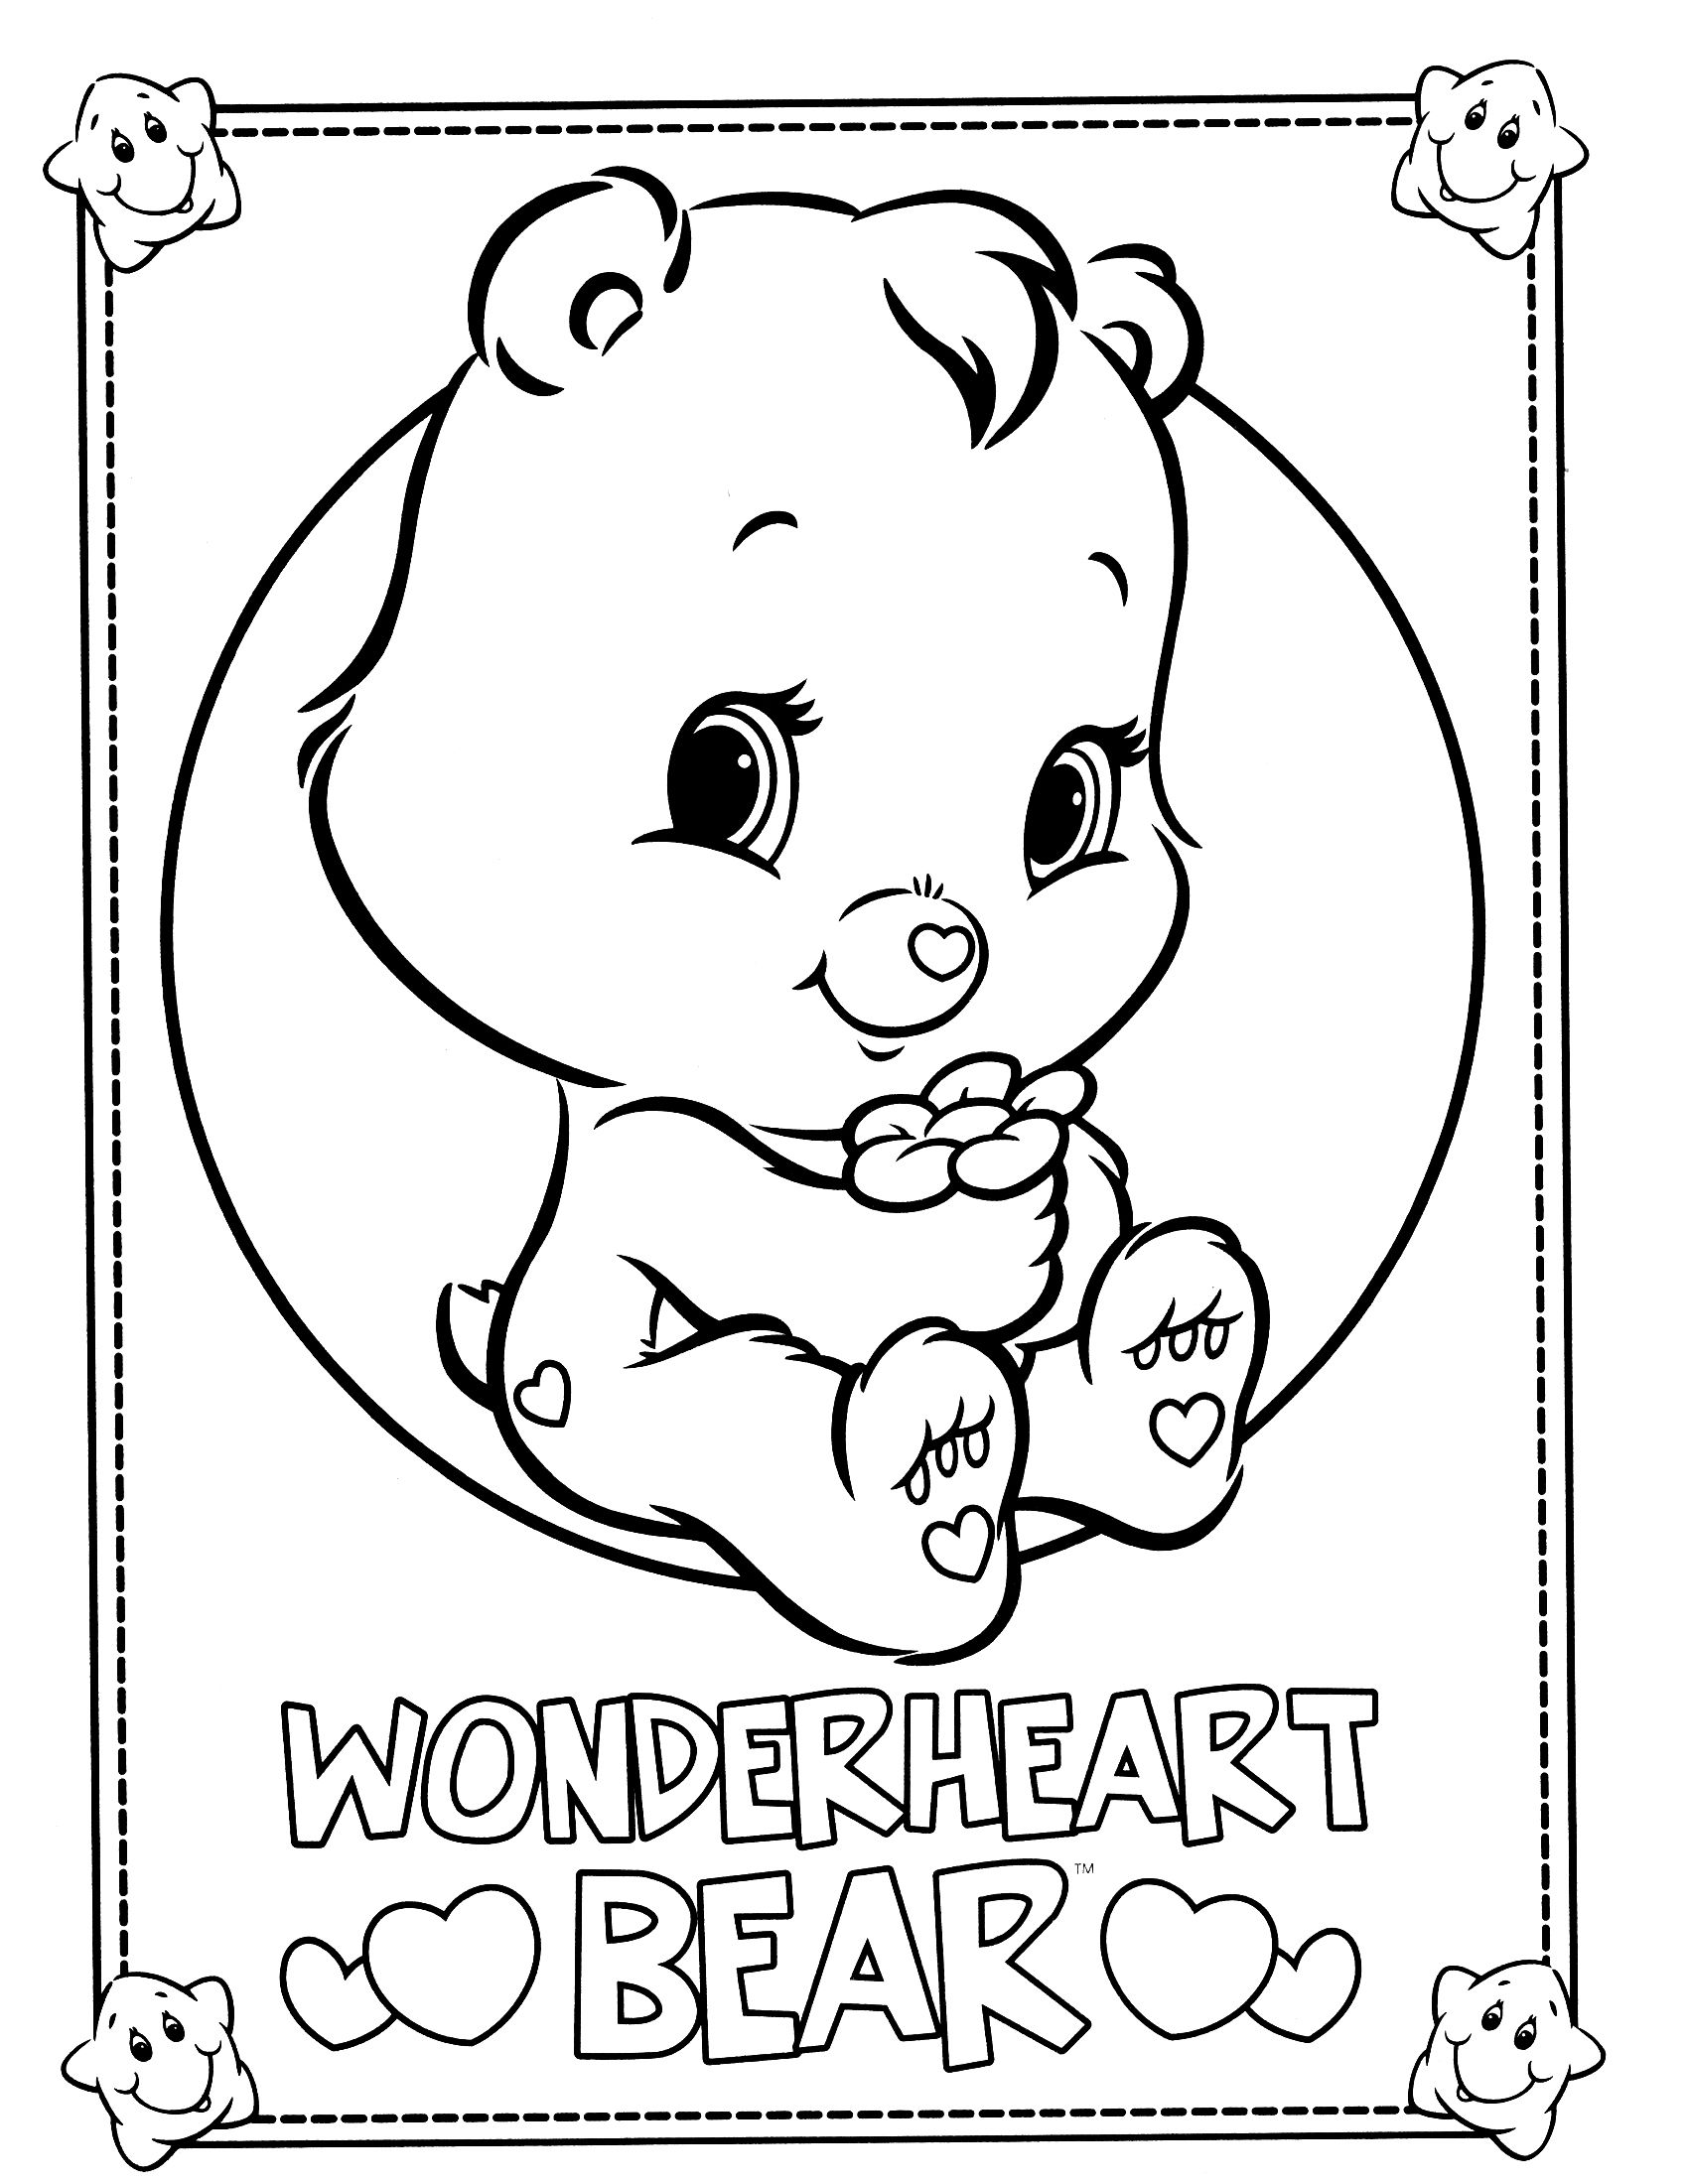 Care Bears Coloring Page Bear Coloring Pages Unicorn Coloring Pages Hello Kitty Colouring Pages